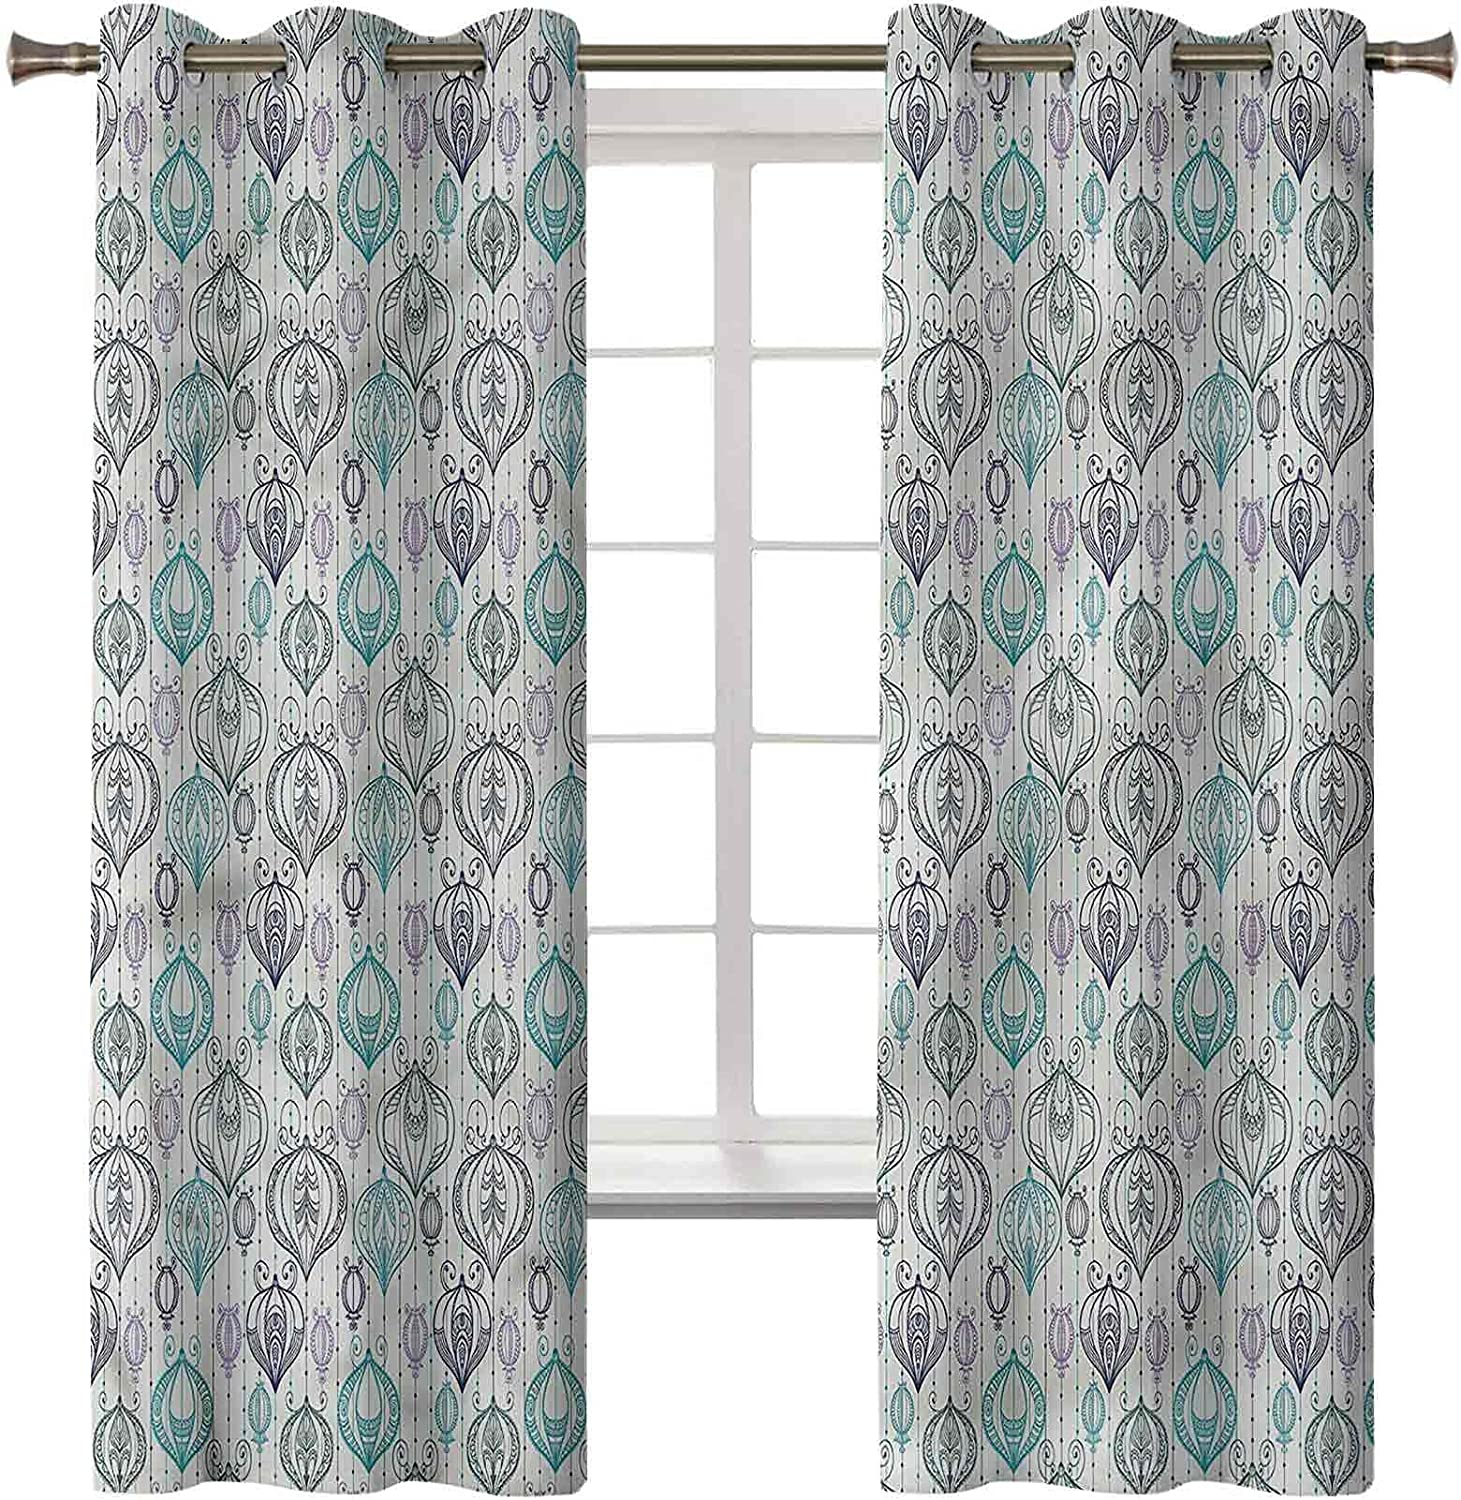 Lantern Light Blocking Limited time trial price Curtains Set of 2 x Panels 84 Superior 42 Dr Inch